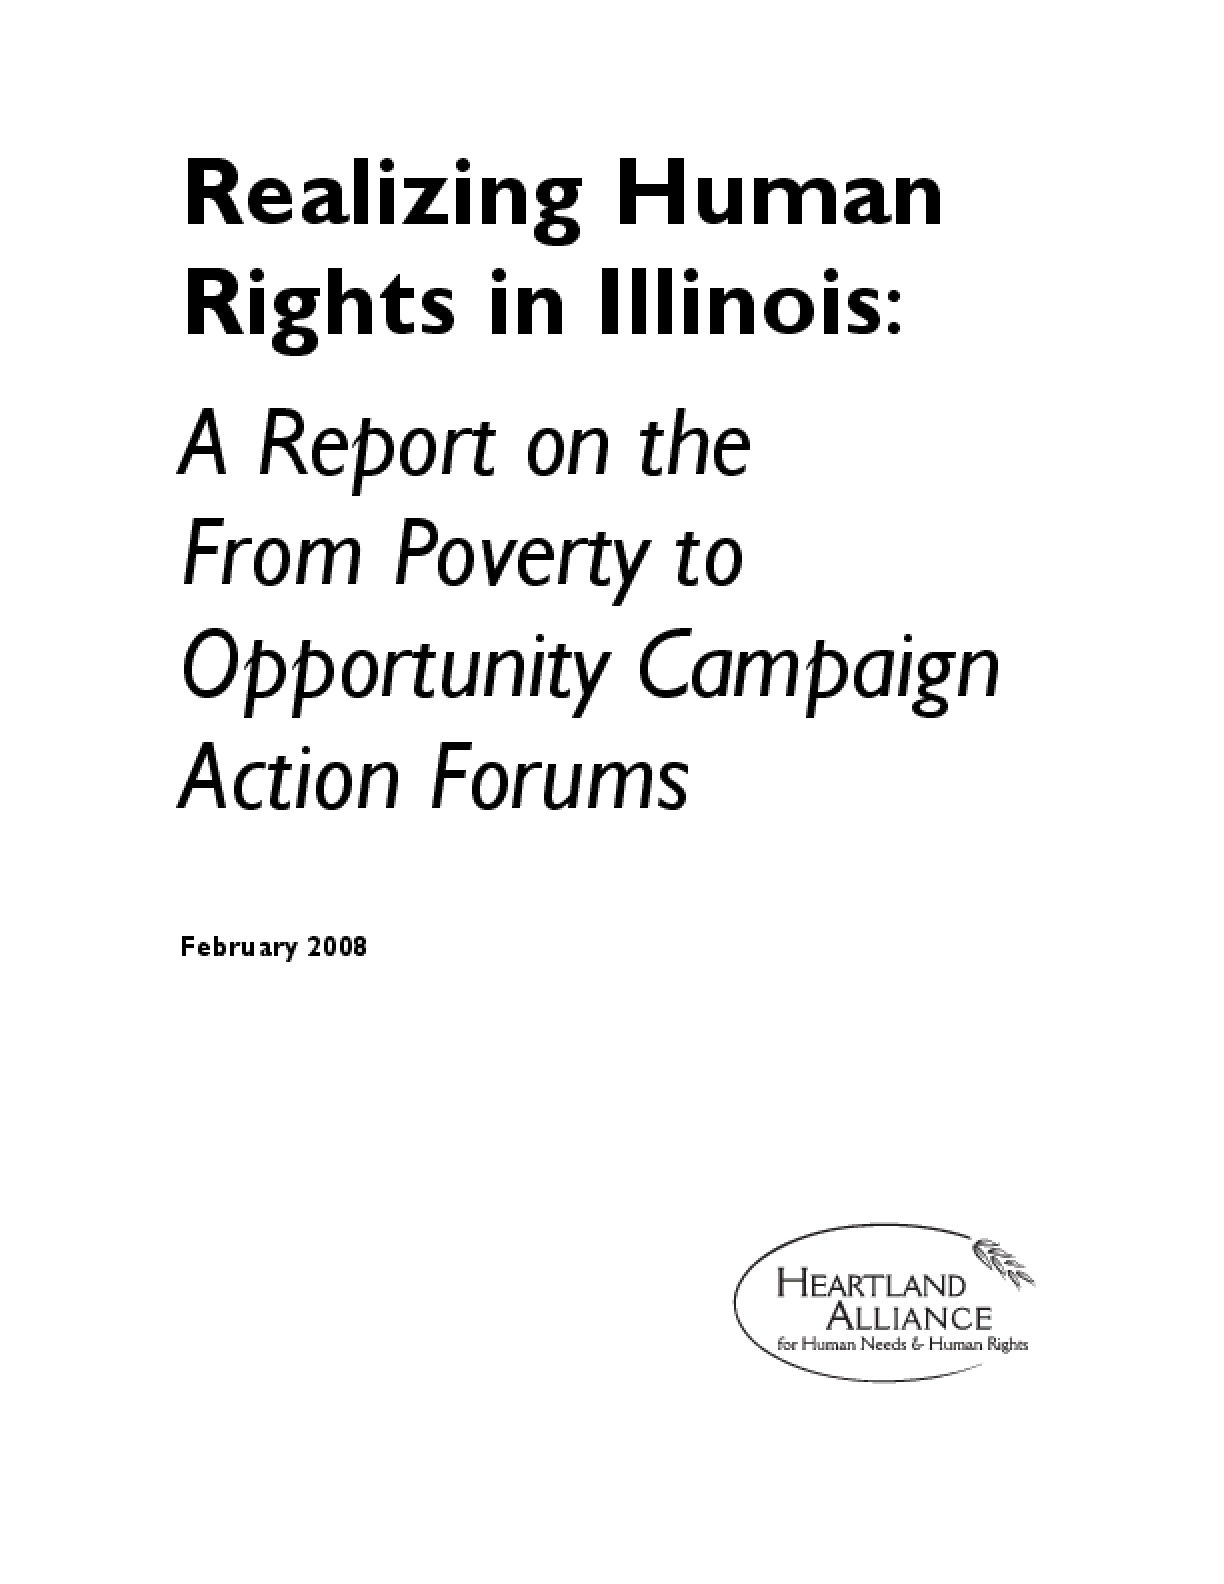 Realizing Human Rights in Illinois: A Report on the From Poverty to Opportunity Campaign Action Forums